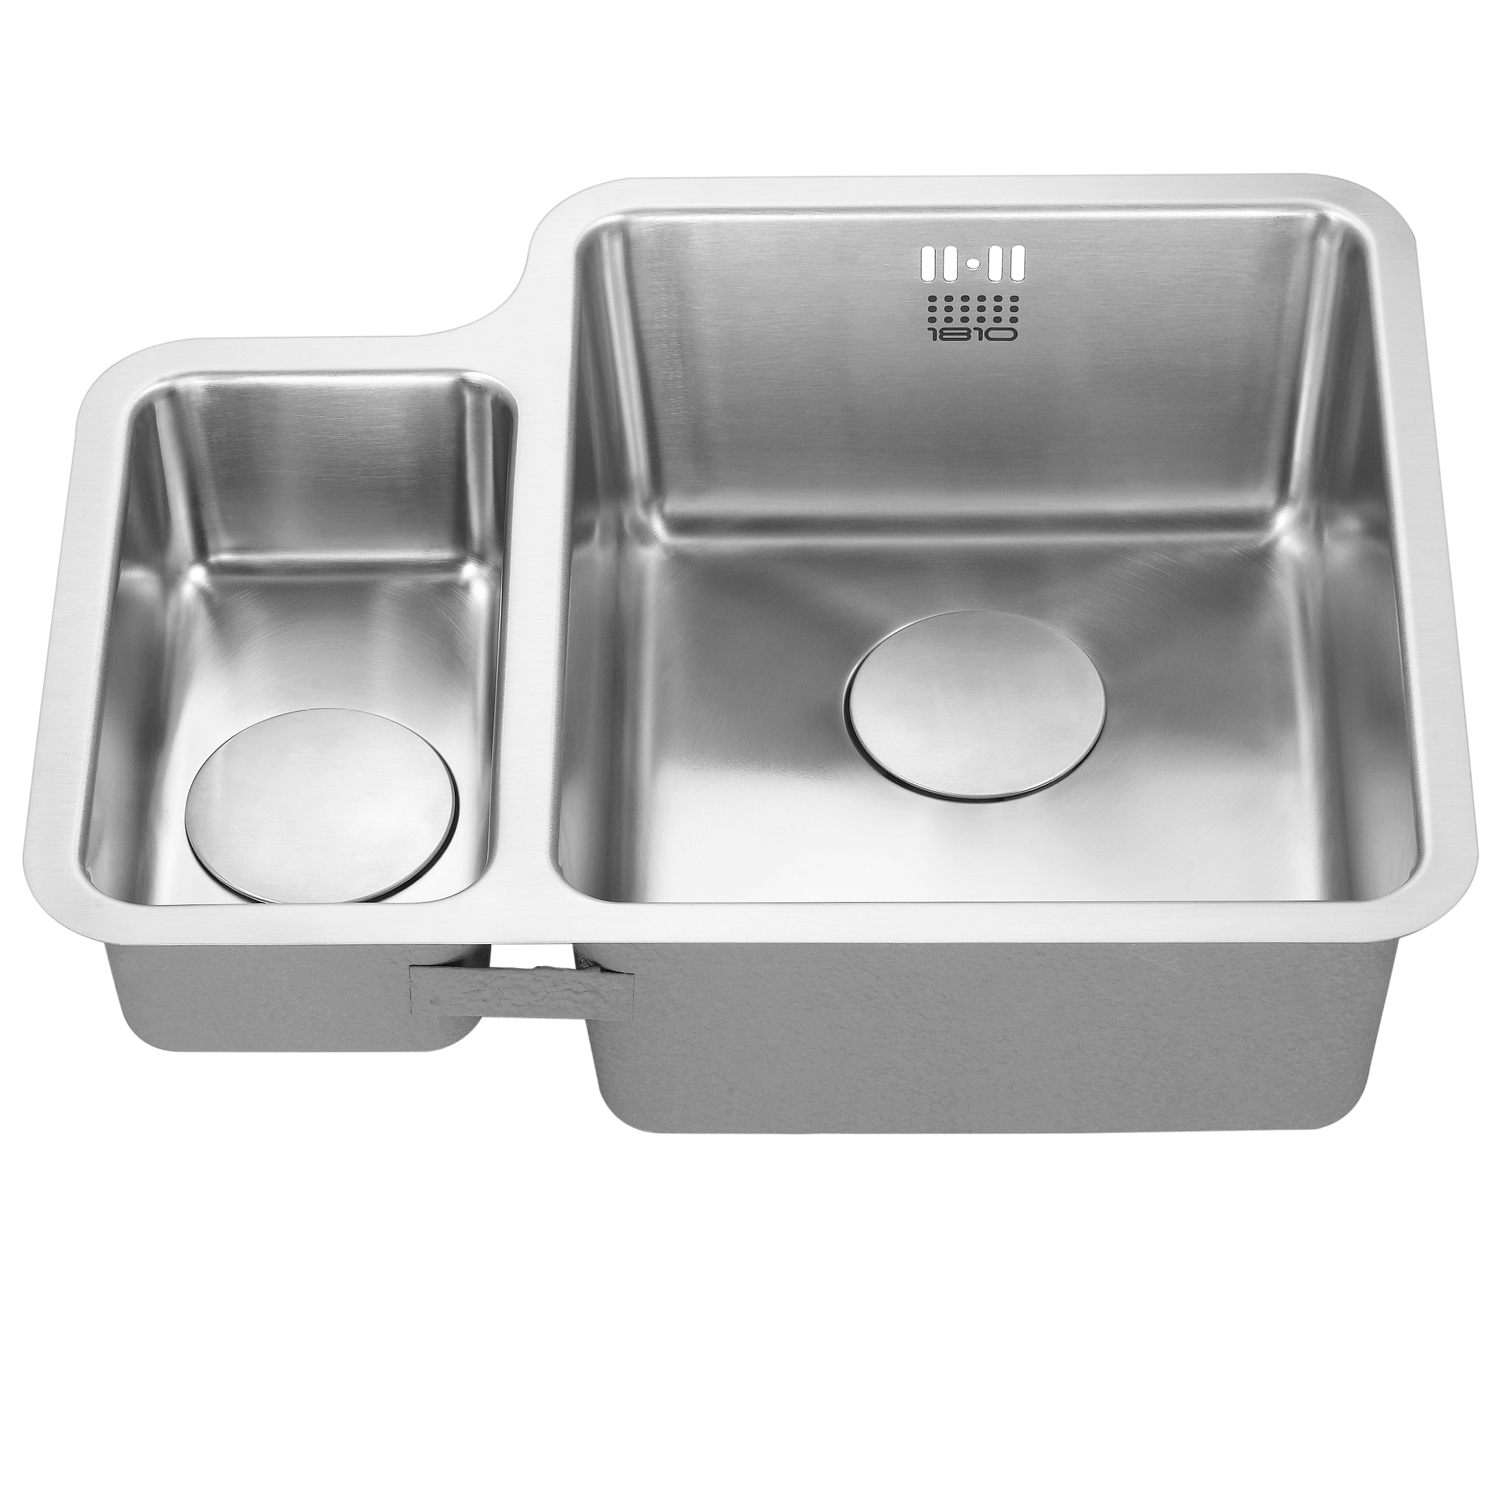 The 1810 Company Luxsoduo25 160/340U 1.5 Bowl Kitchen Sink - Right Handed-1